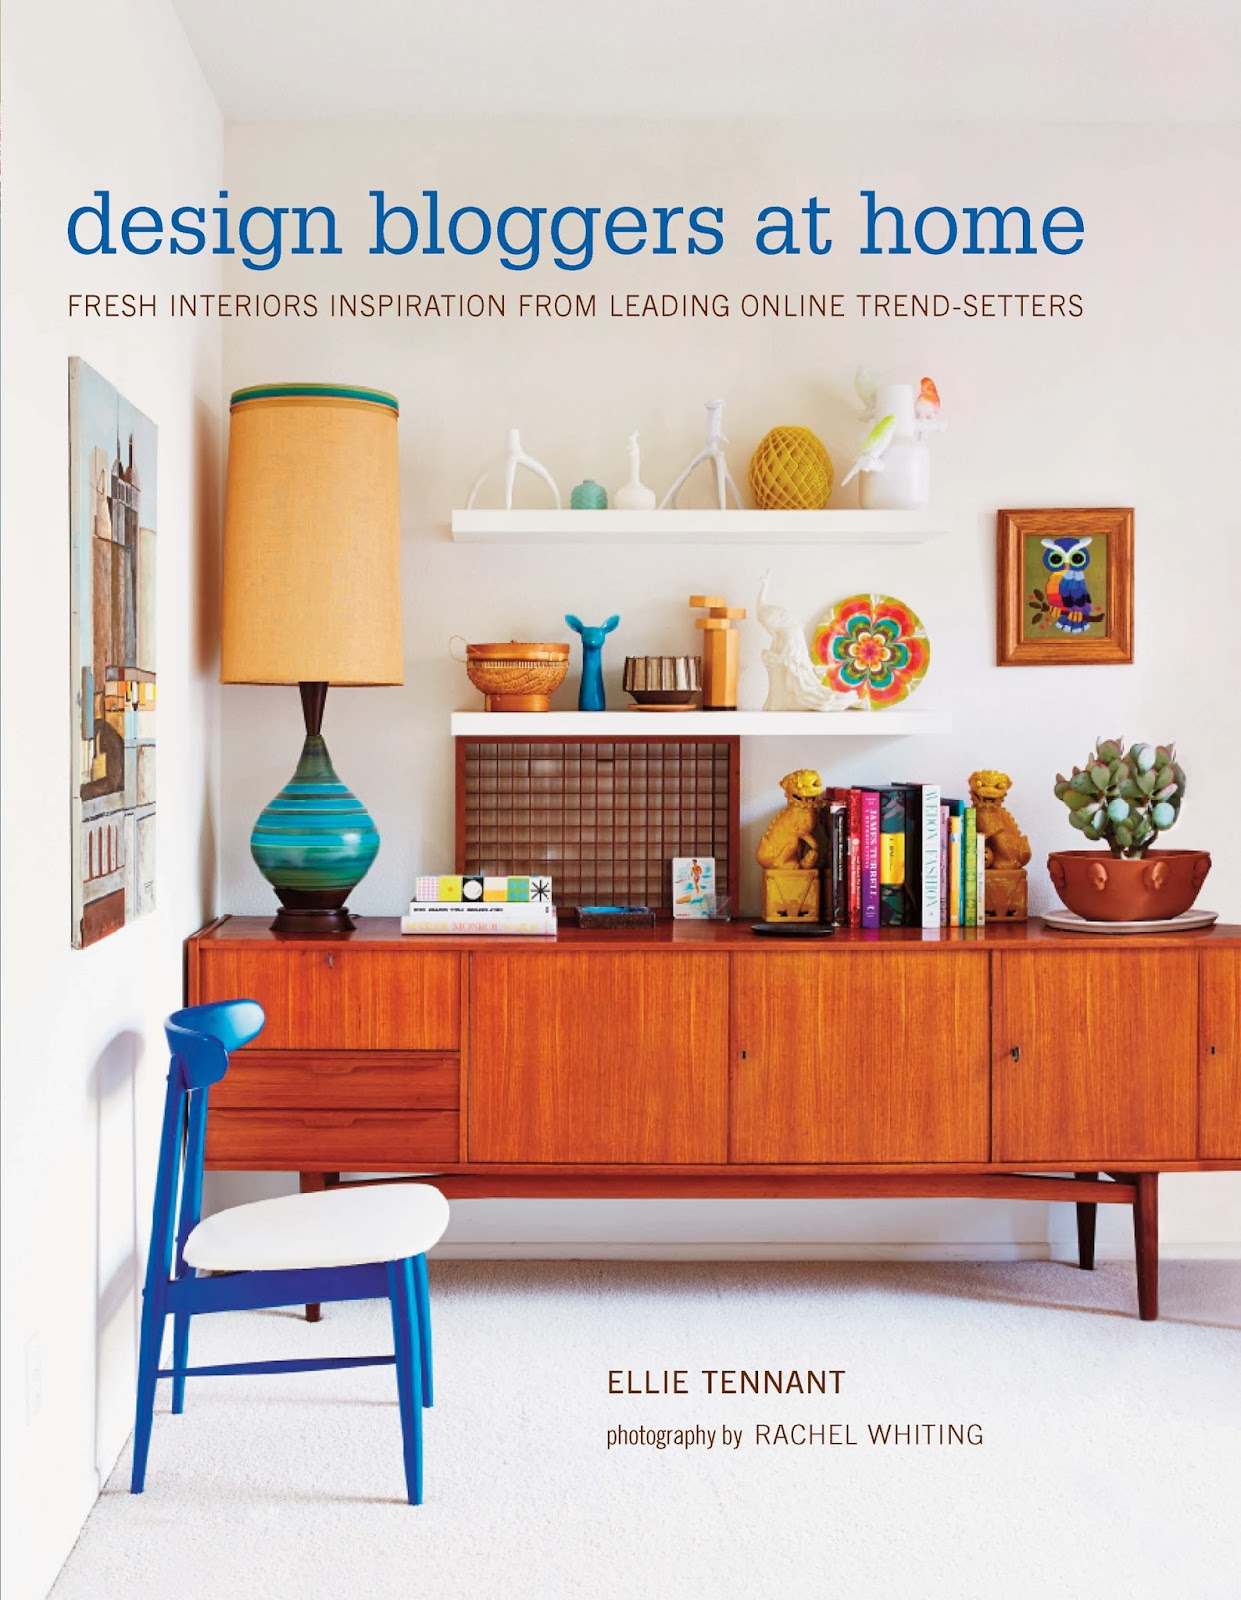 design bloggers at home a book by ellie tennant and ellie tennant